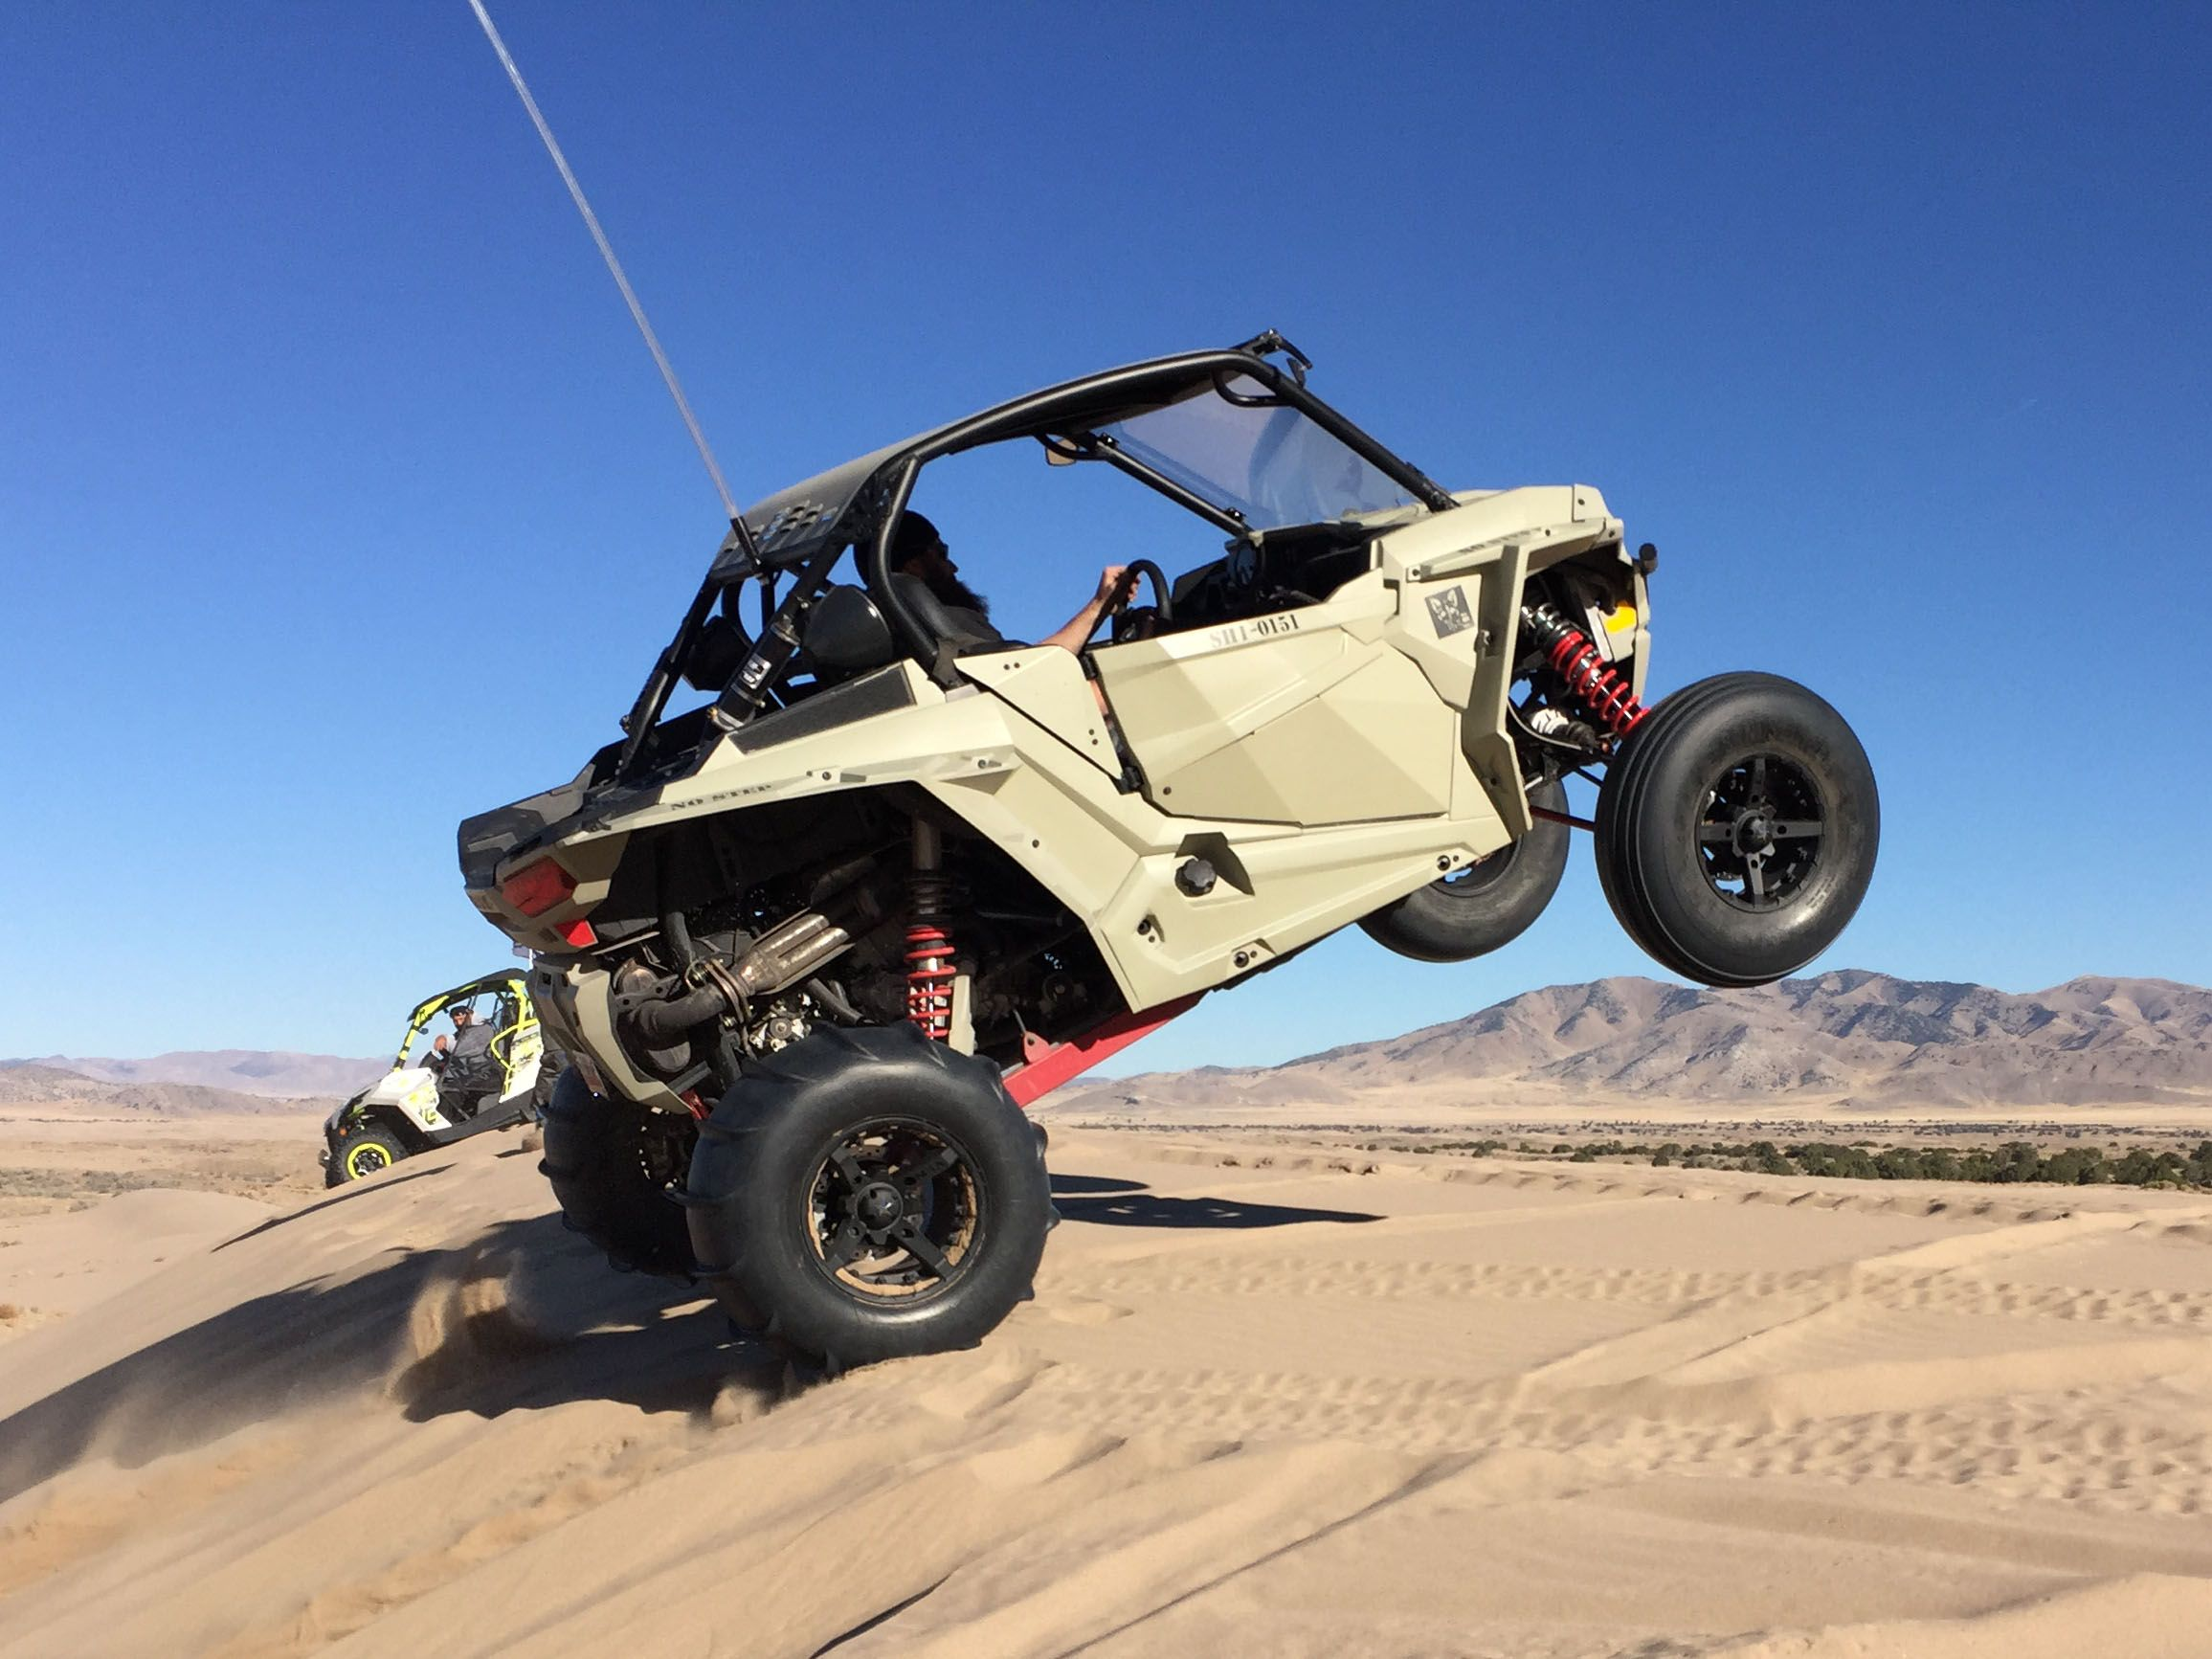 Desert Tan Polaris RZR XP 1000 2 seat with a Vent Racing Coupe Cage